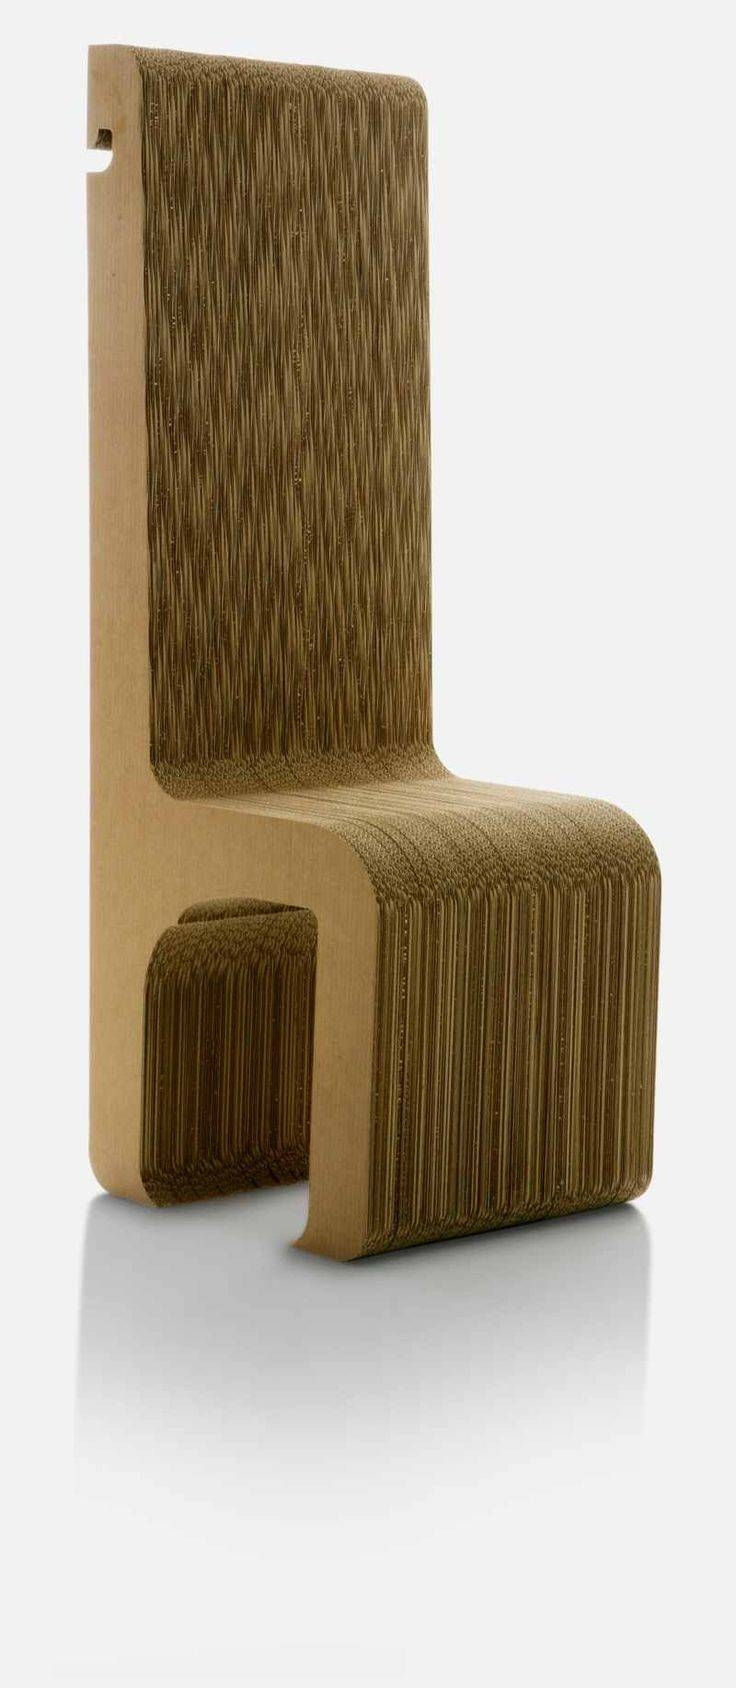 99 Best Kartland Images On Pinterest | Cardboard Furniture throughout Cardboard Sofas (Image 2 of 15)